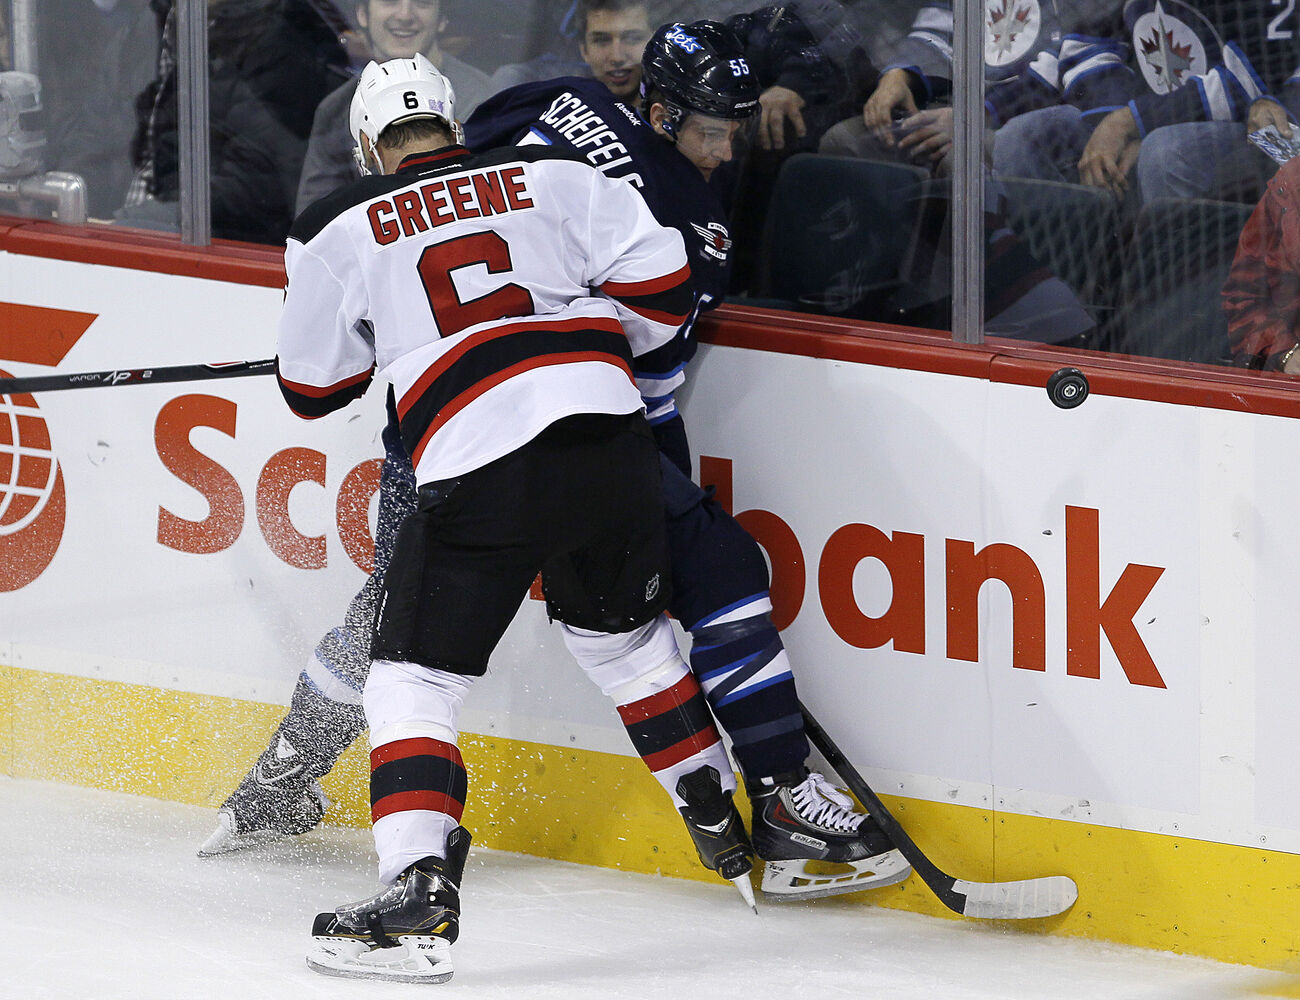 Mark Scheifele gets tied up by Andy Greene during the first period. (JOHN WOODS / WINNIPEG FREE PRESS)